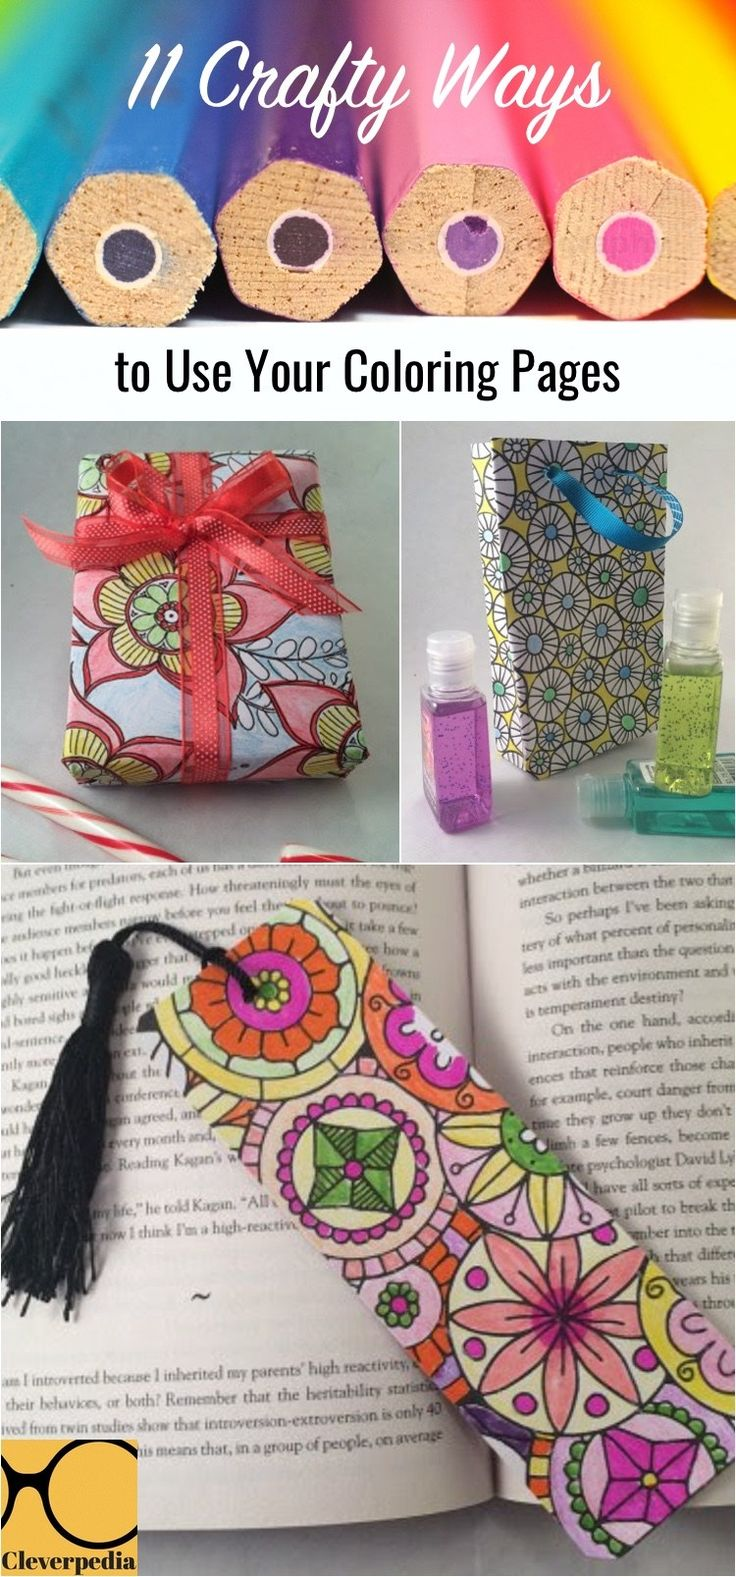 What do you do with your coloring pages when you're done coloring them? Here are 11 DIY ways to use your coloring pages!